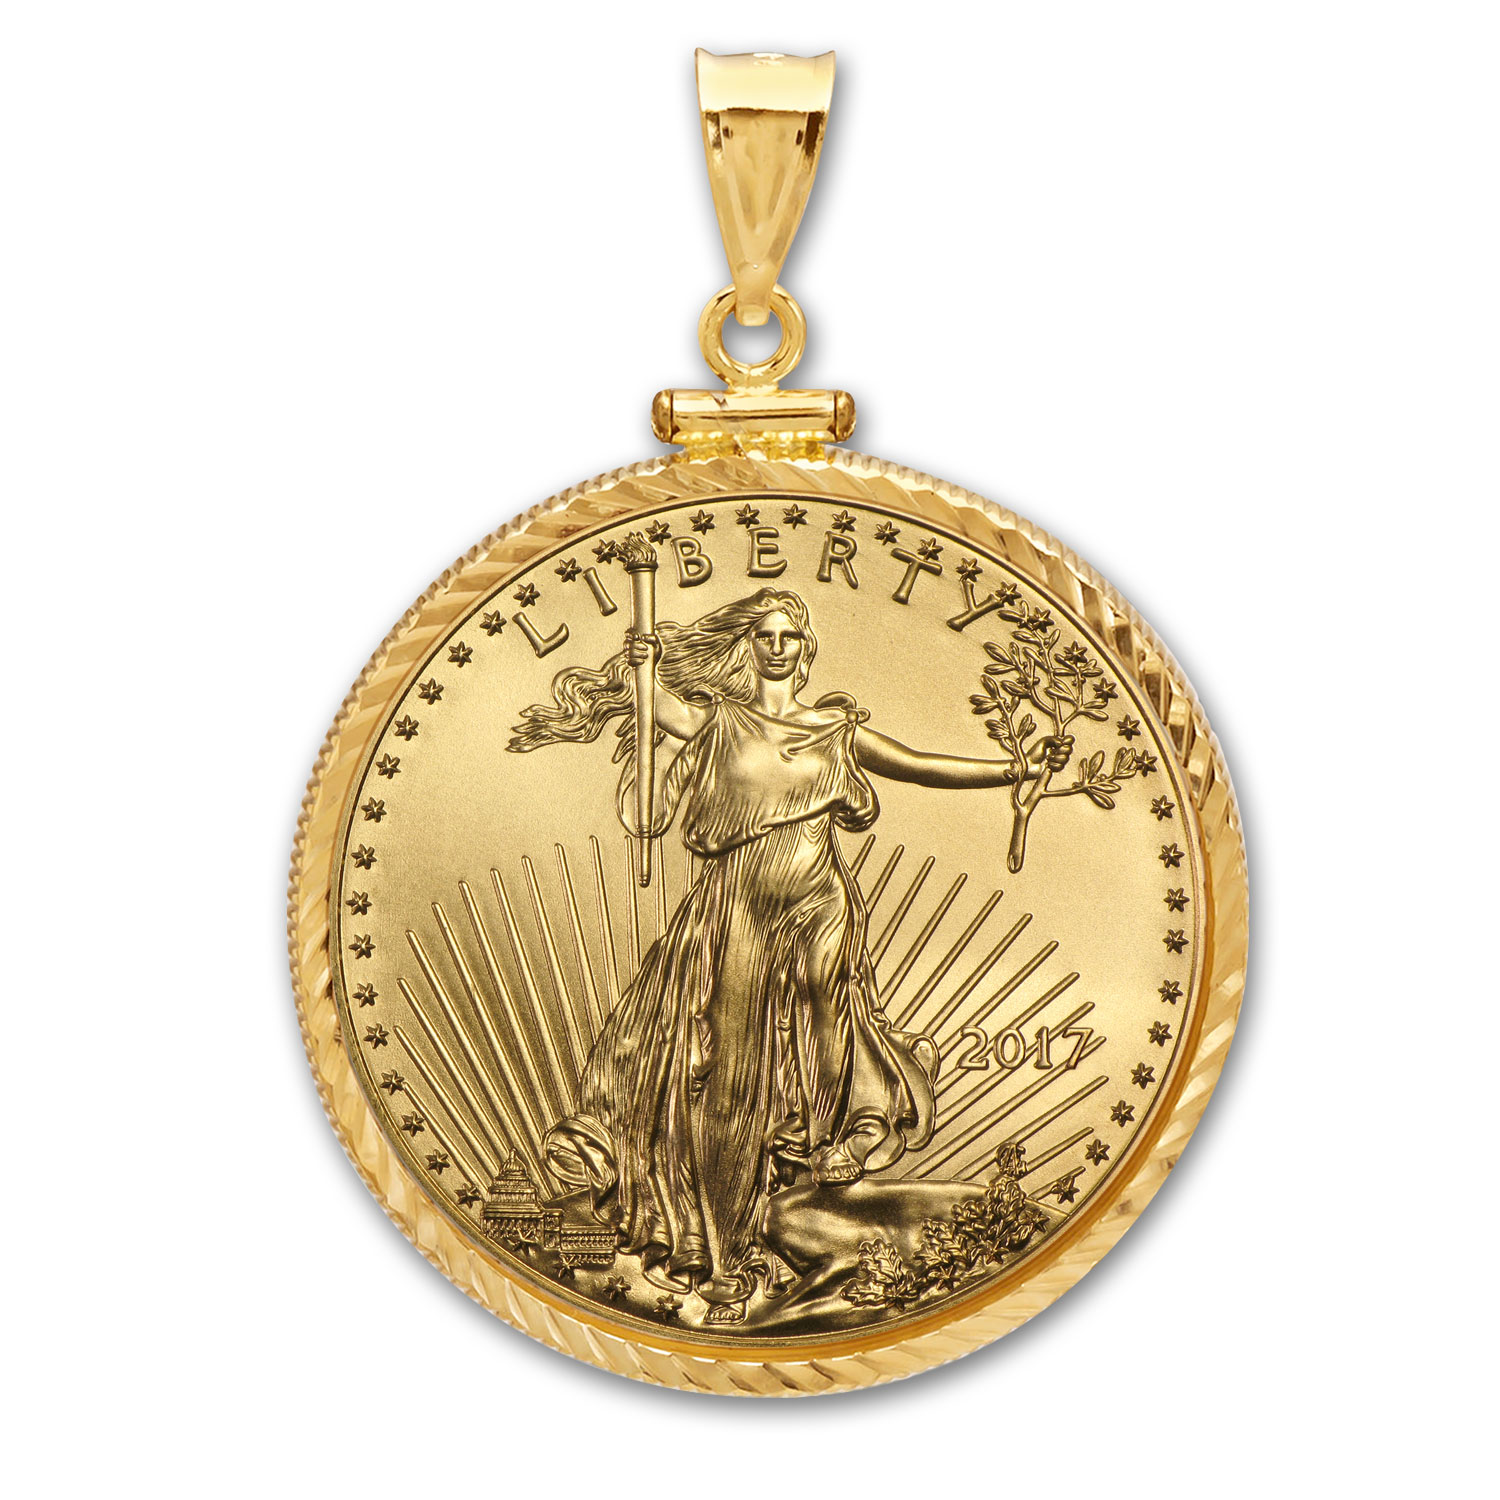 2017 1 oz Gold Eagle Pendant (Diamond-ScrewTop Bezel)